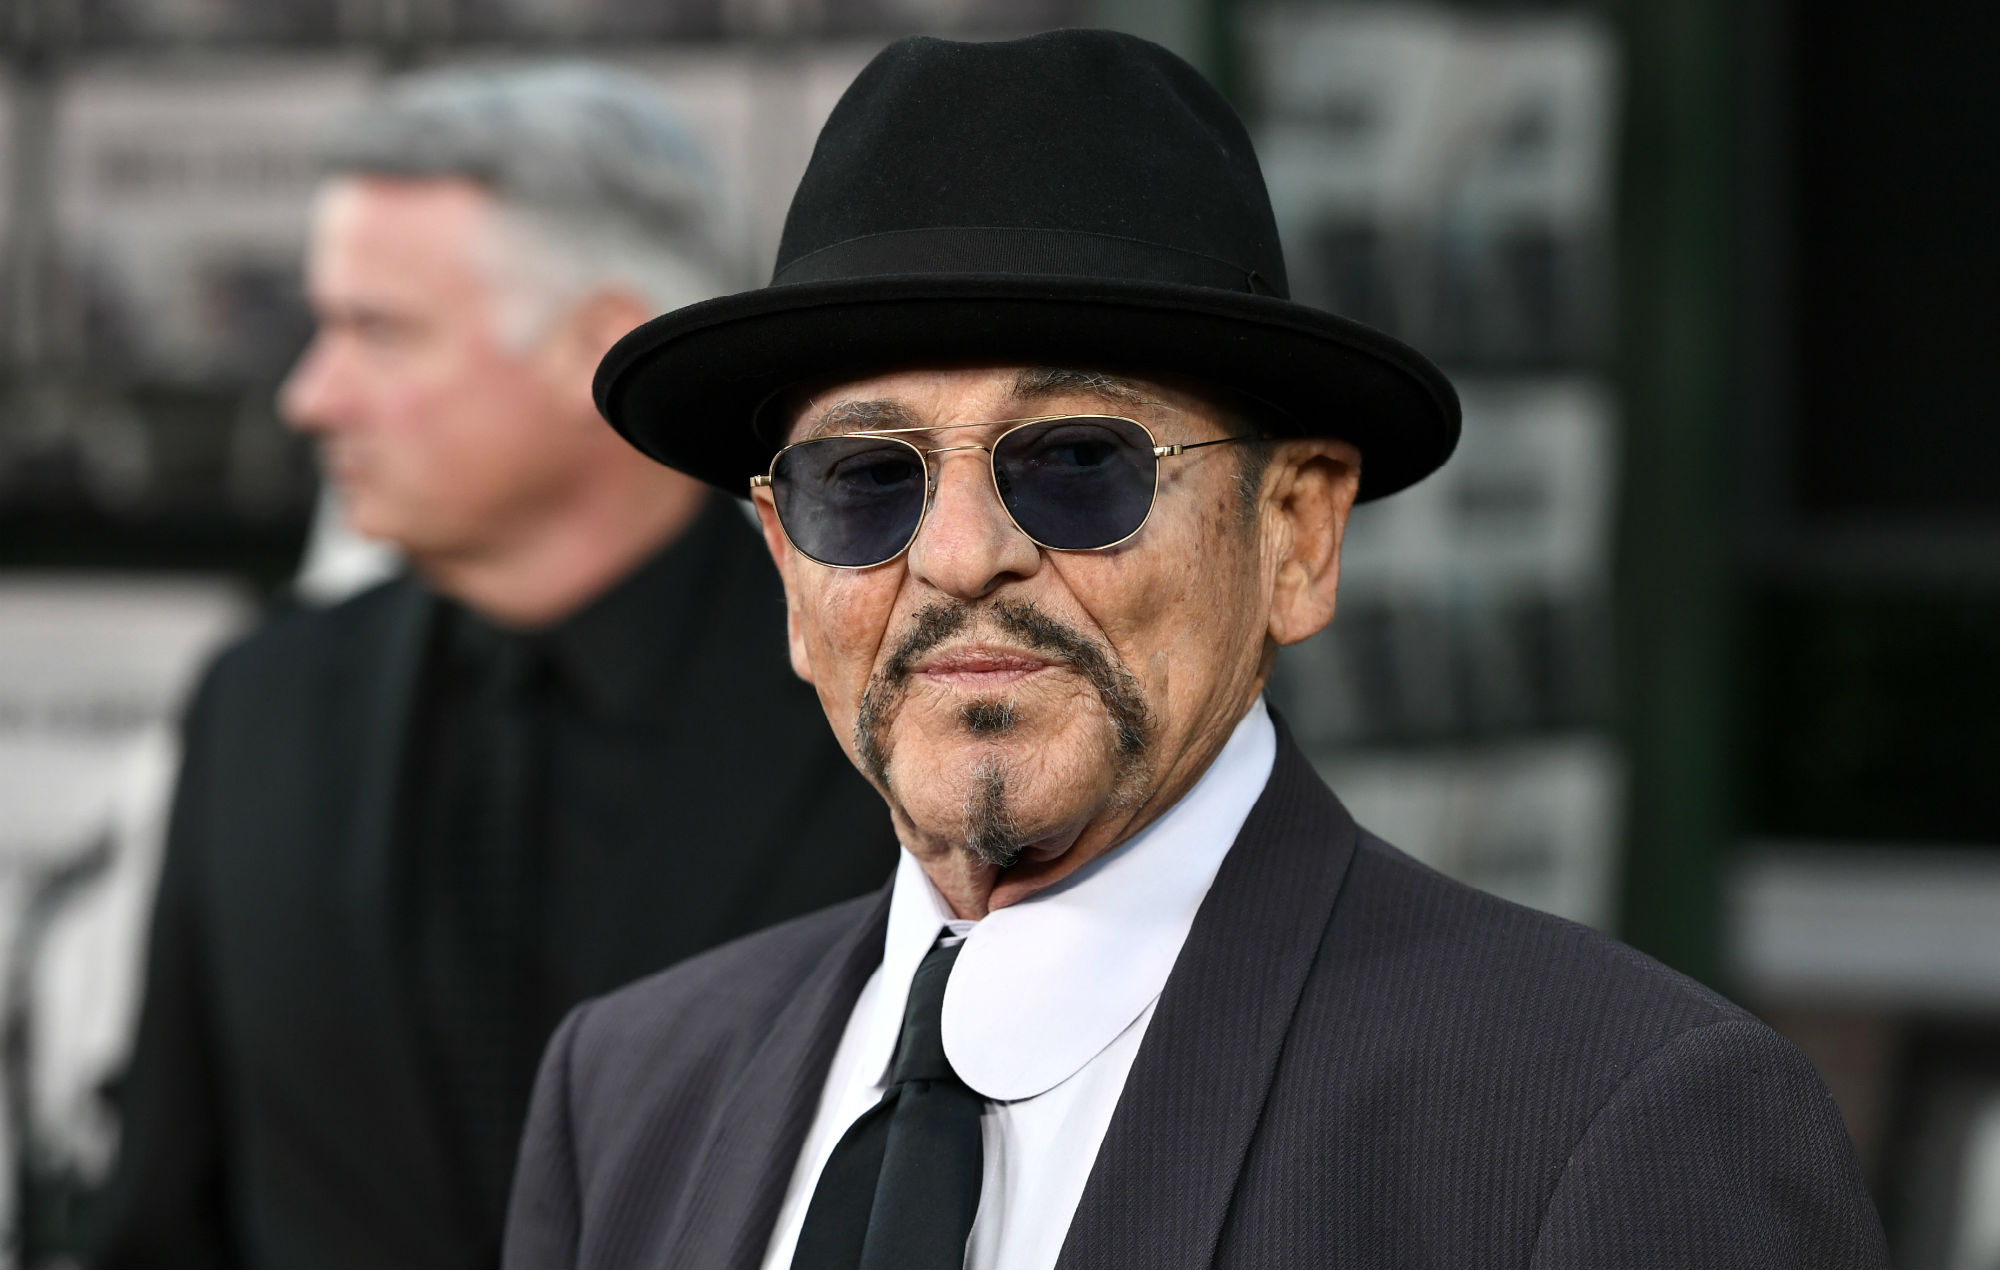 Joe Pesci has announced he's releasing his first new album in 21 years